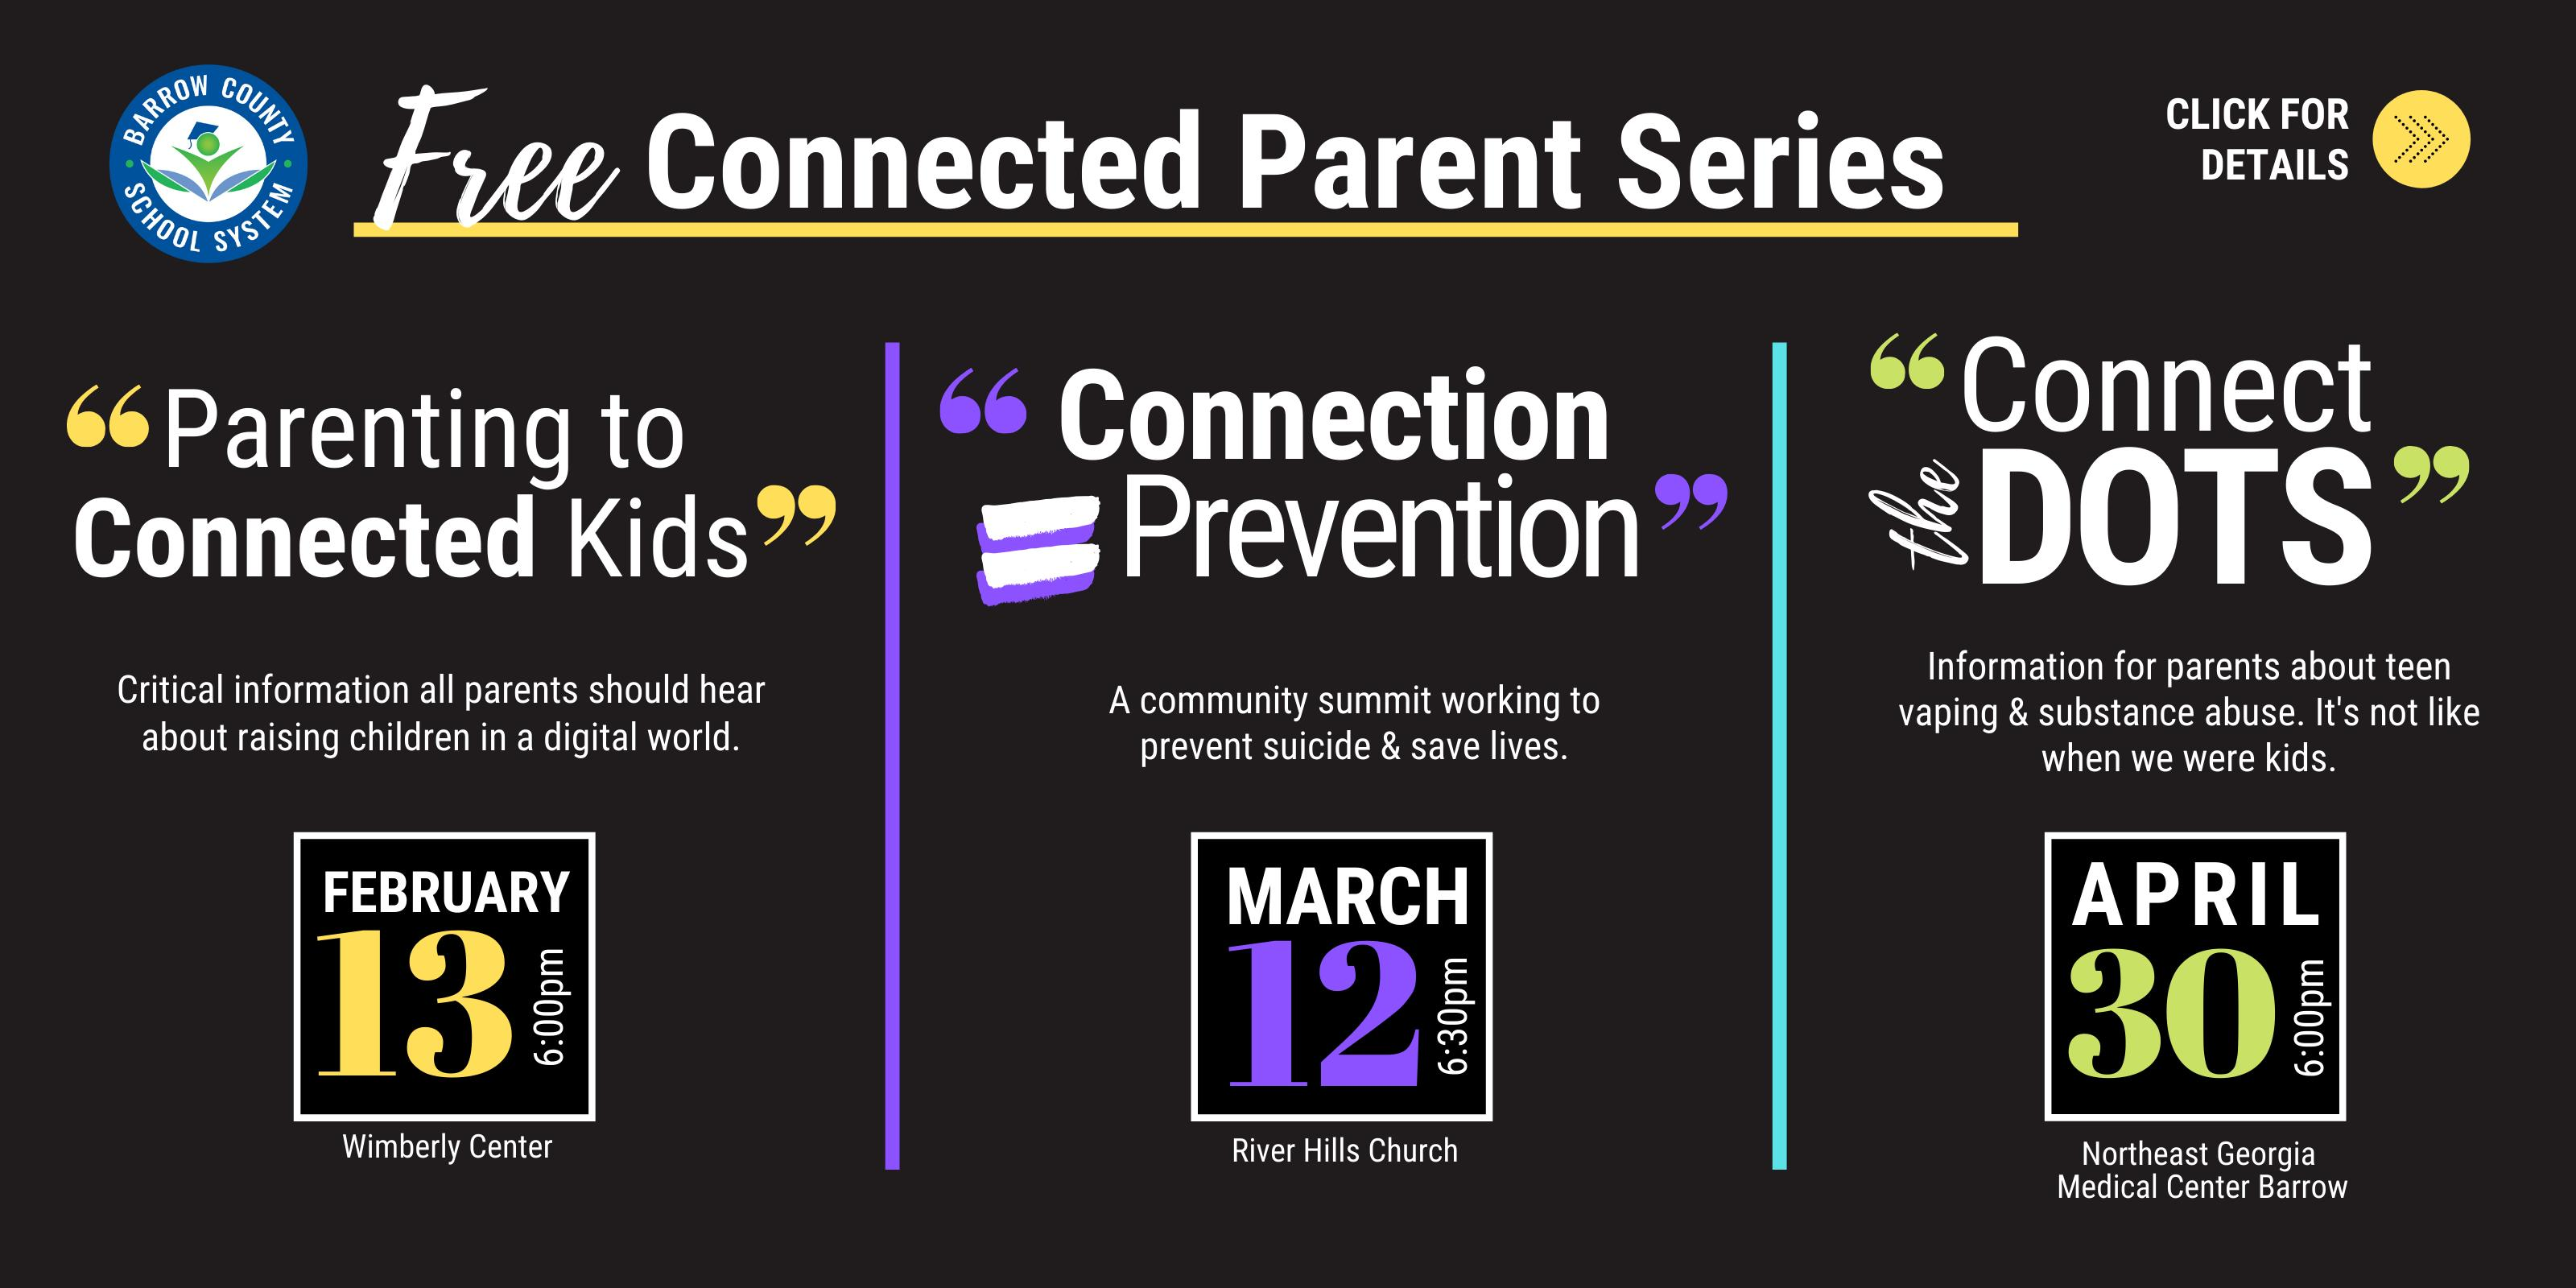 Free Connected Parent Series